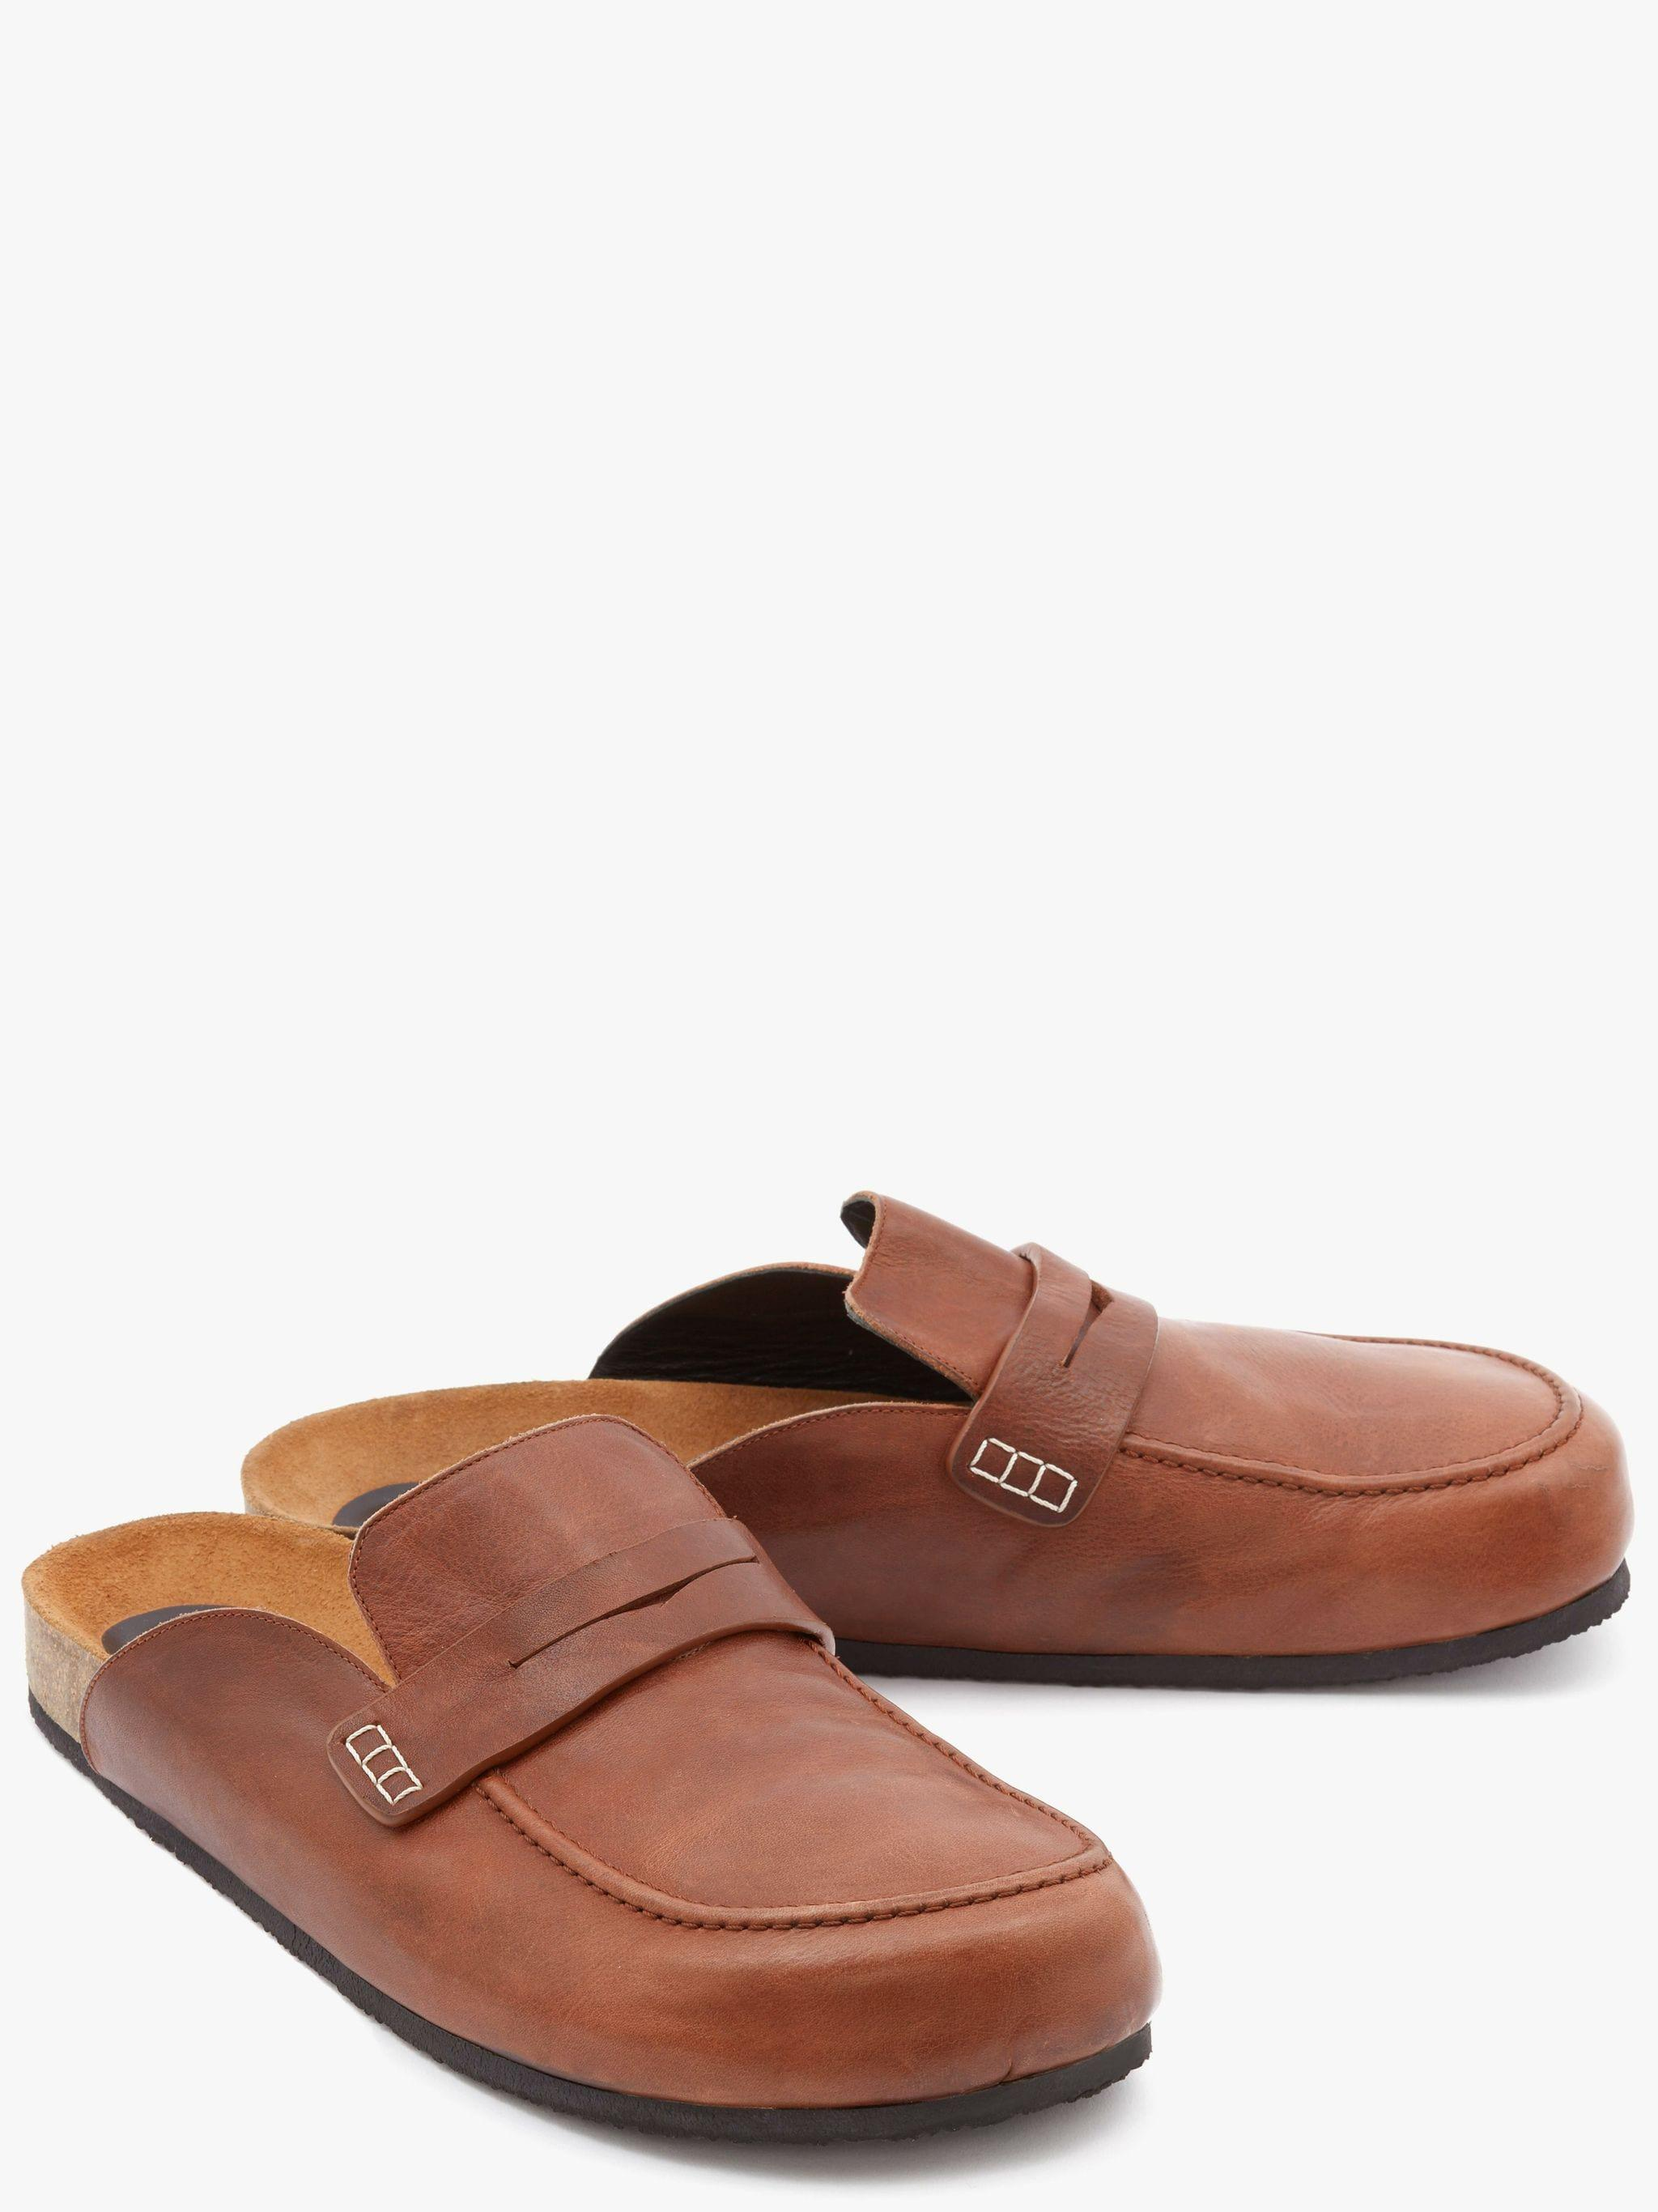 LEATHER LOAFER MULES 1